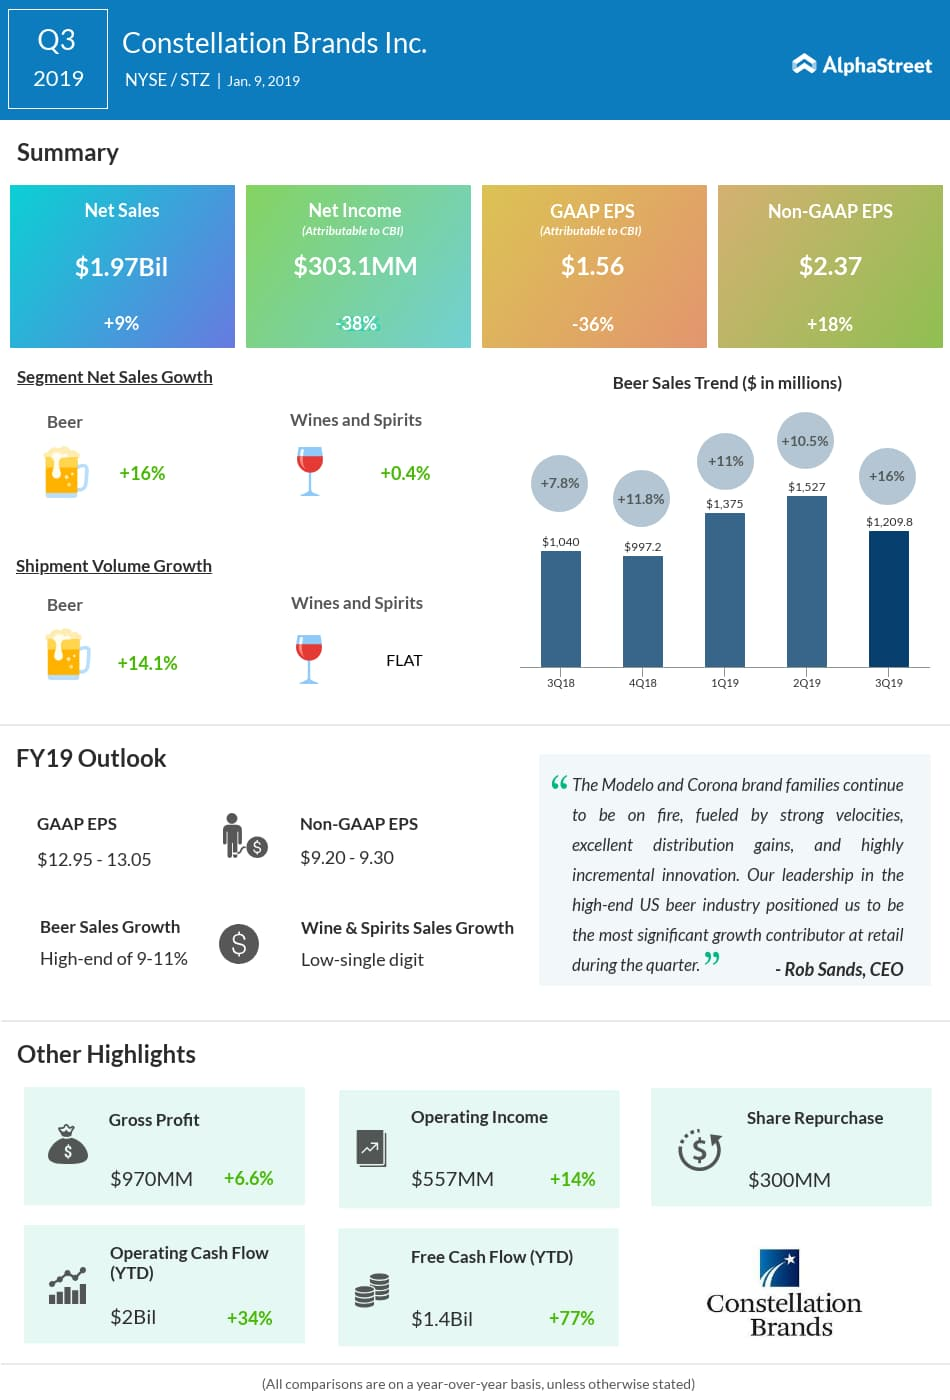 Constellation Brands q3 2019 earnings snapshot